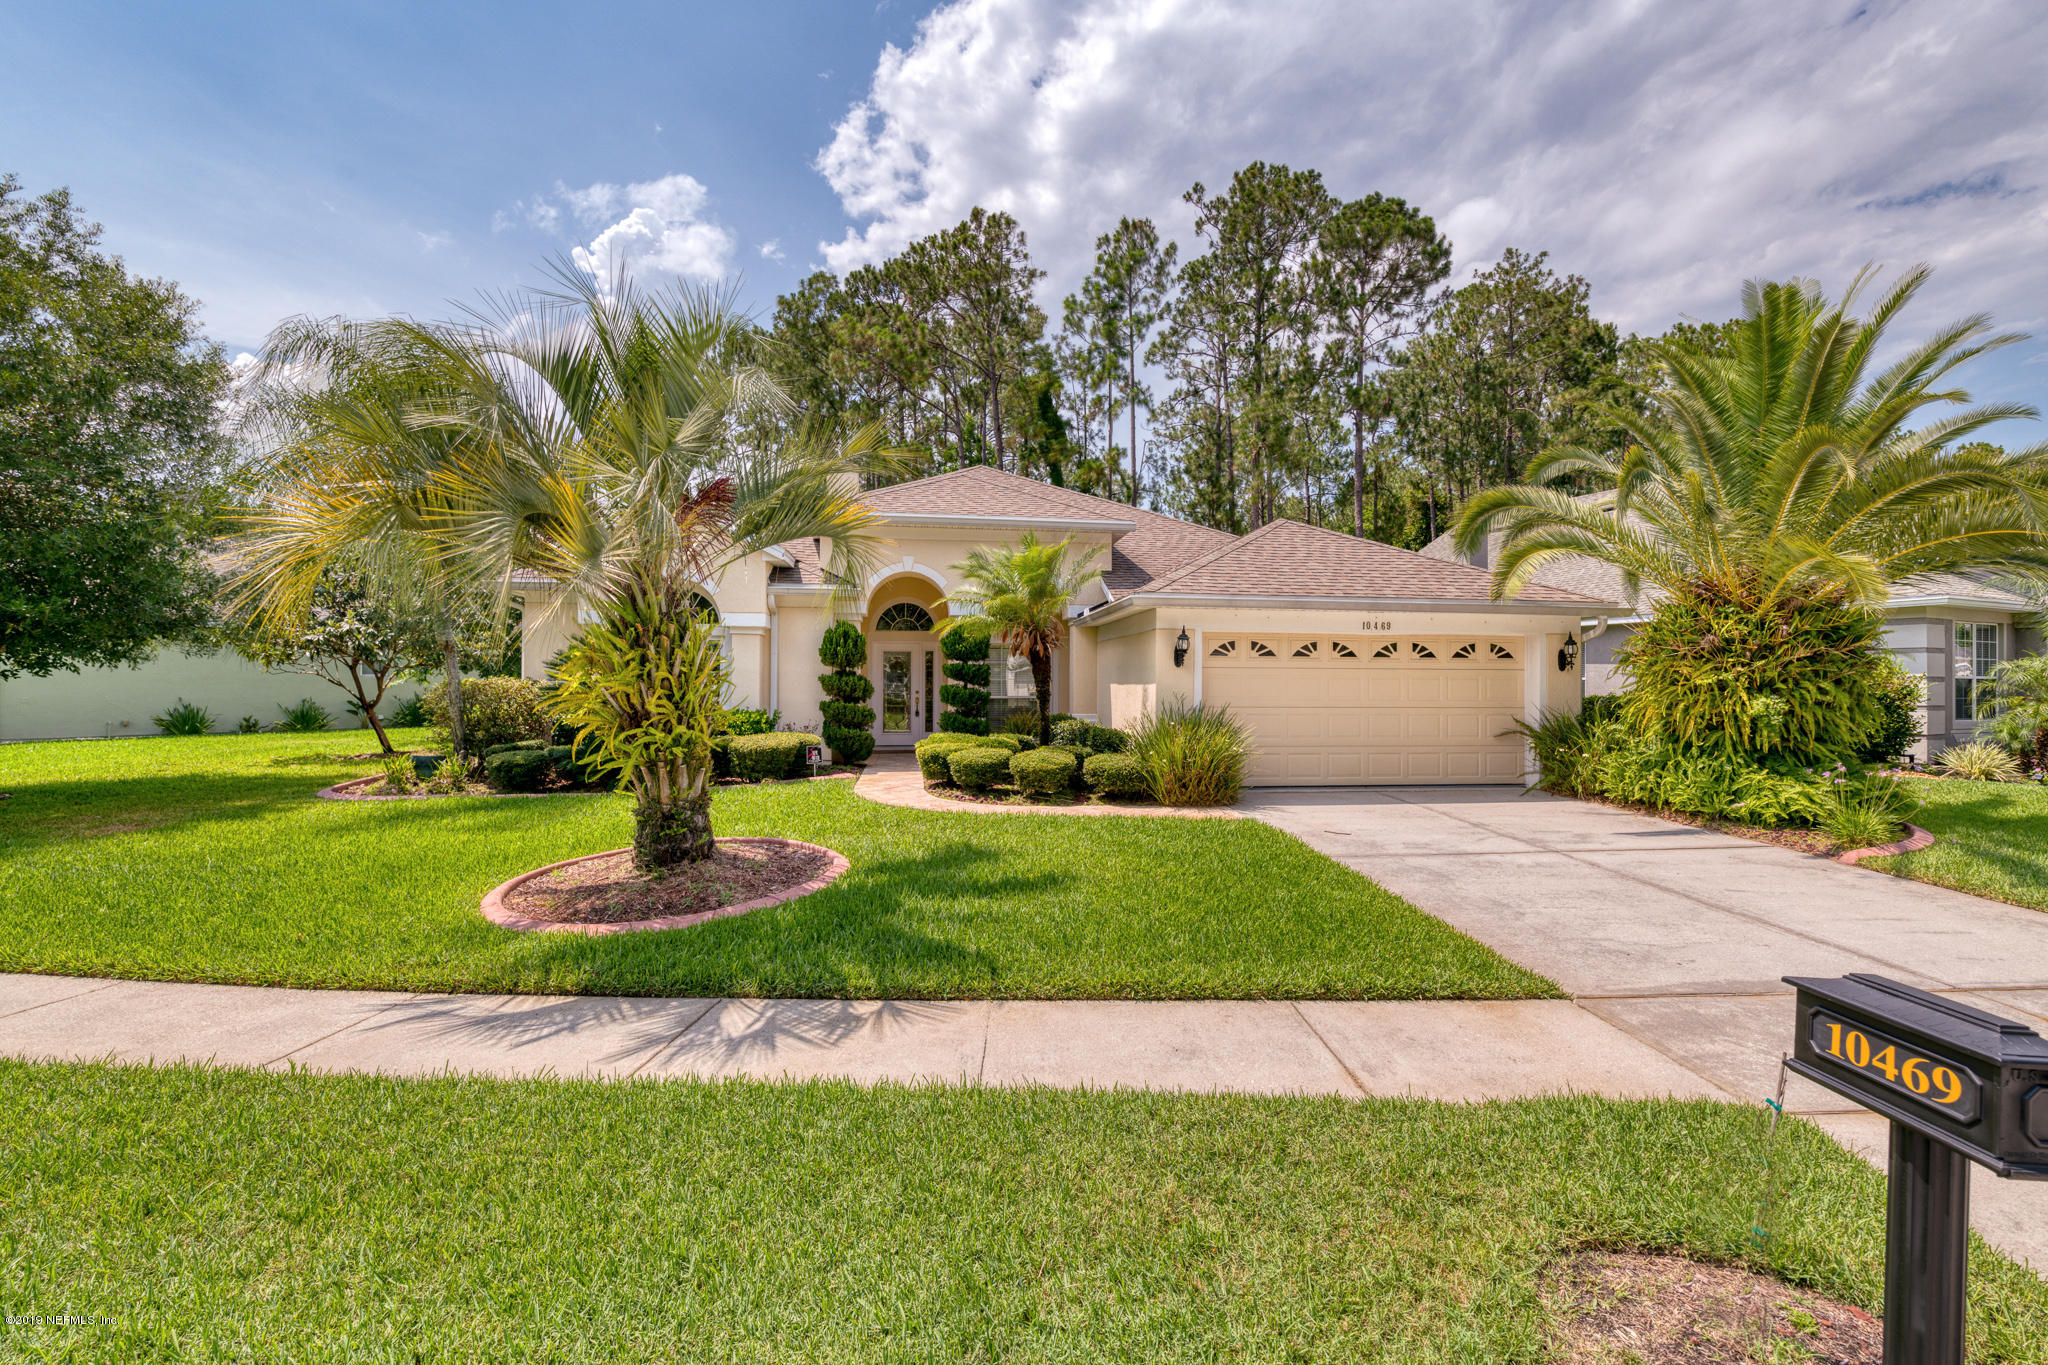 10469 CRESTON GLEN CIR JACKSONVILLE - 1